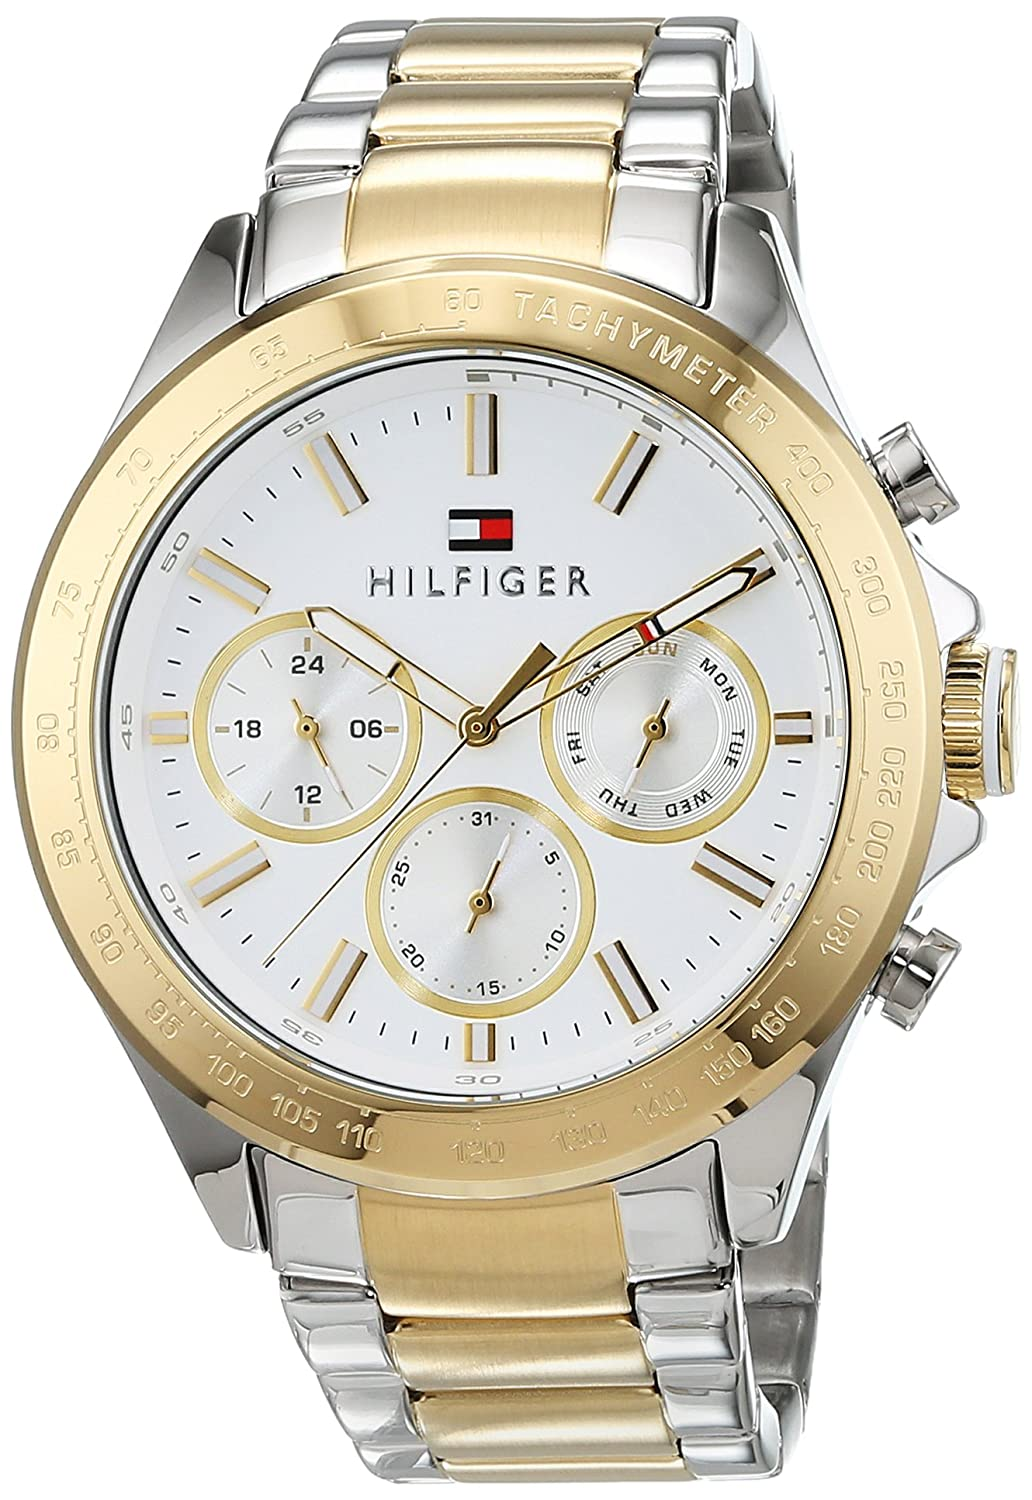 1bc1b003ef2 Tommy Hilfiger Mens Quartz Watch, multi dial Display and Stainless Steel  Strap 1791226: Amazon.co.uk: Watches